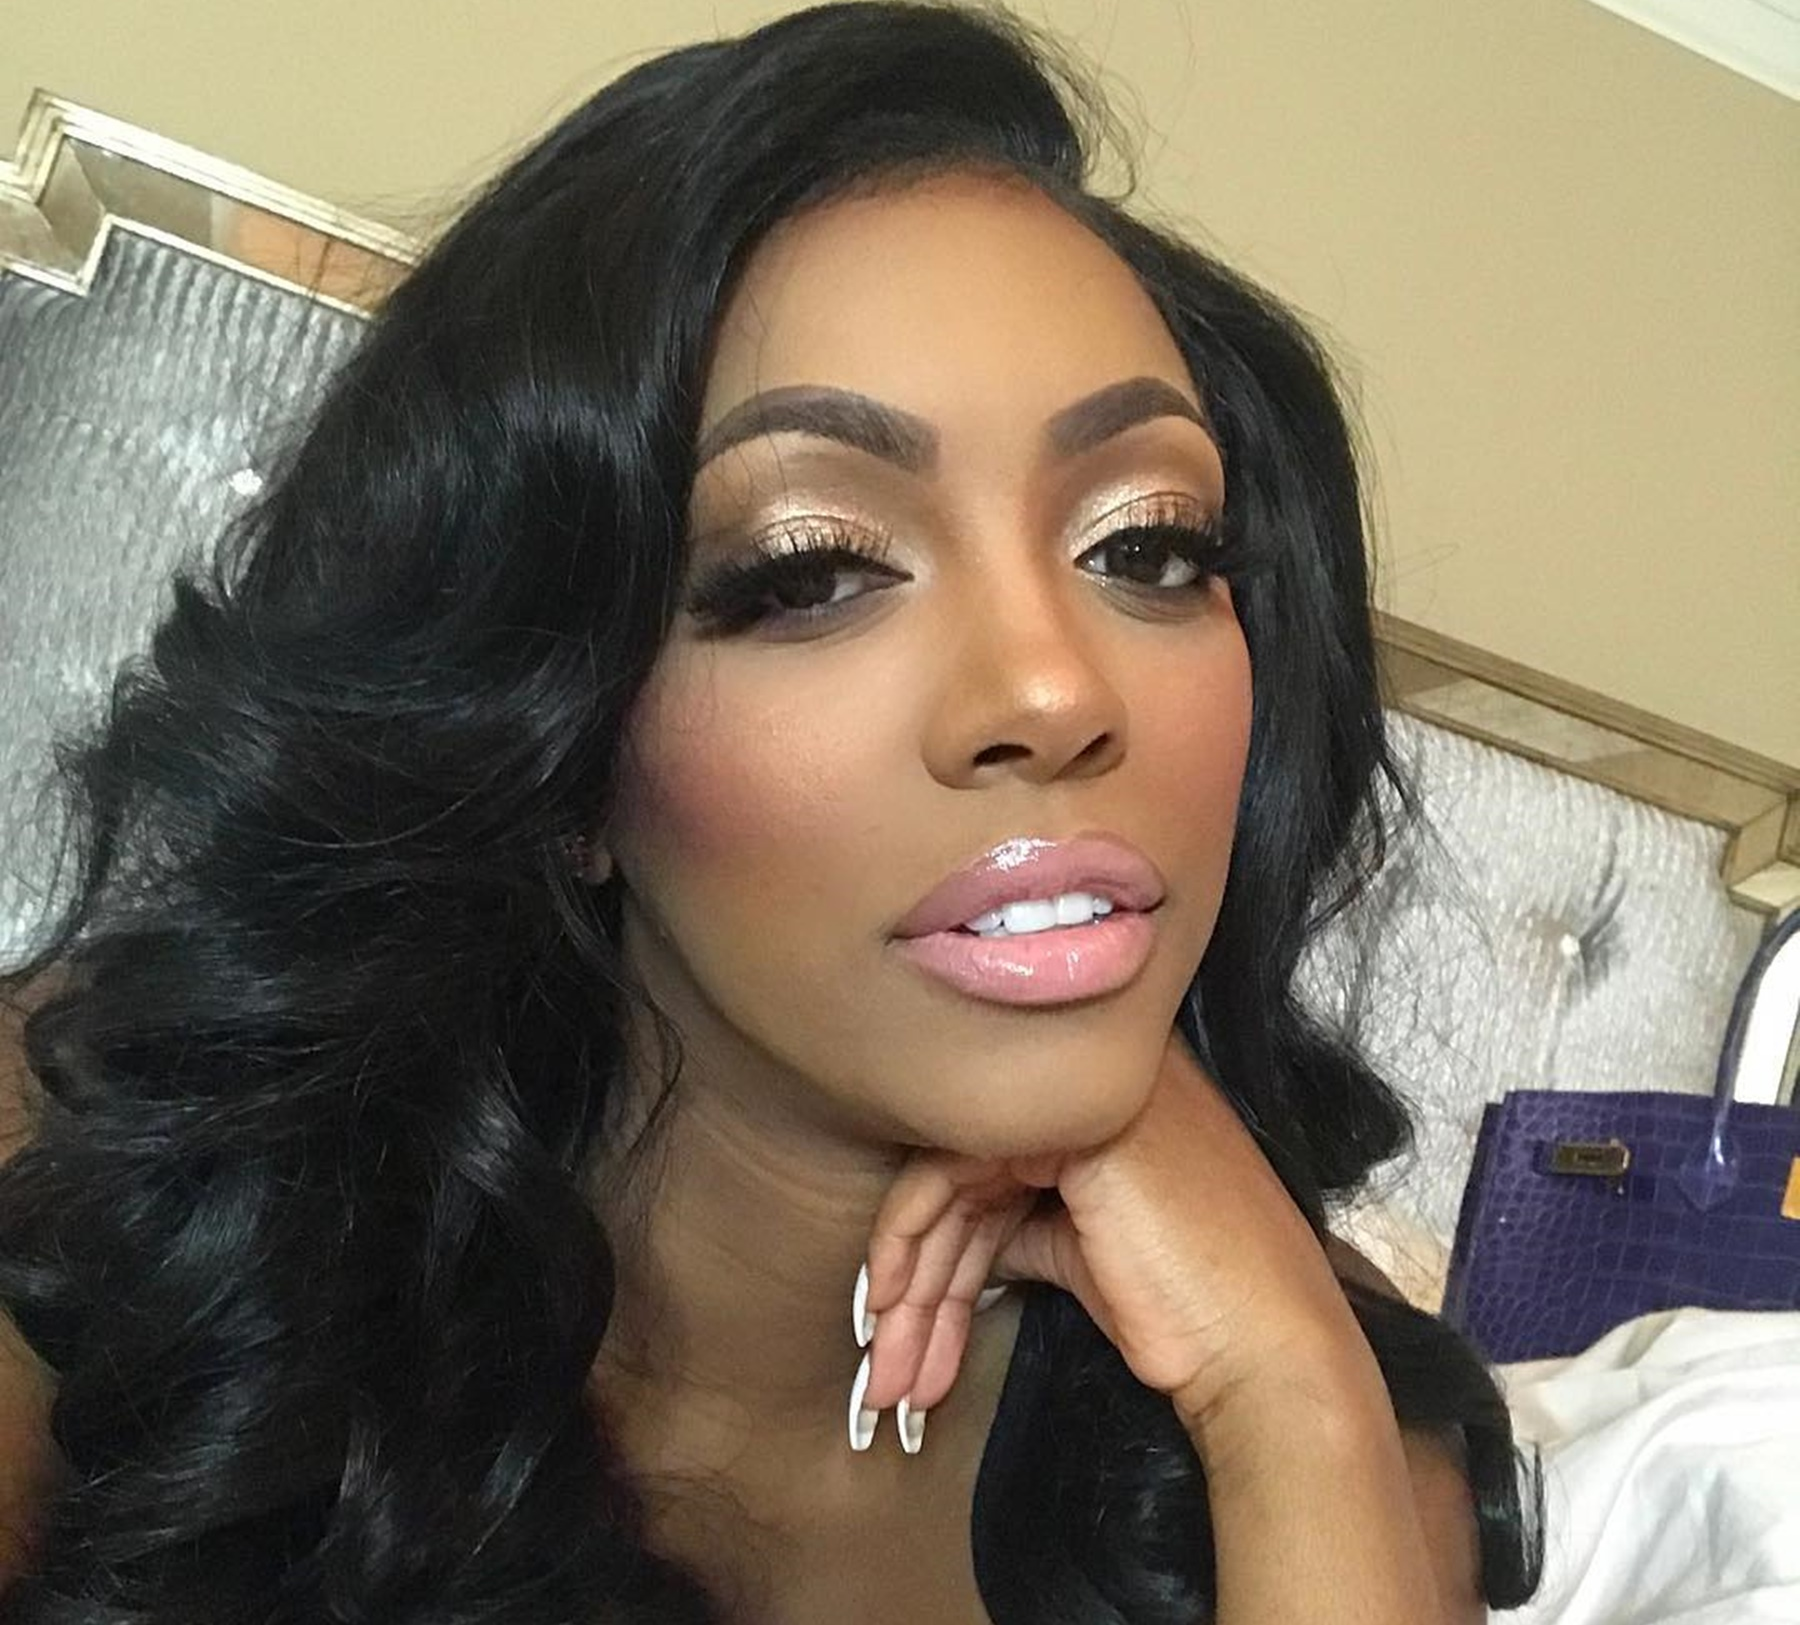 Porsha Williams And Her Mom Are In A League Of Their Own In The Latest Pics - Check Out Their Hourglass Figures